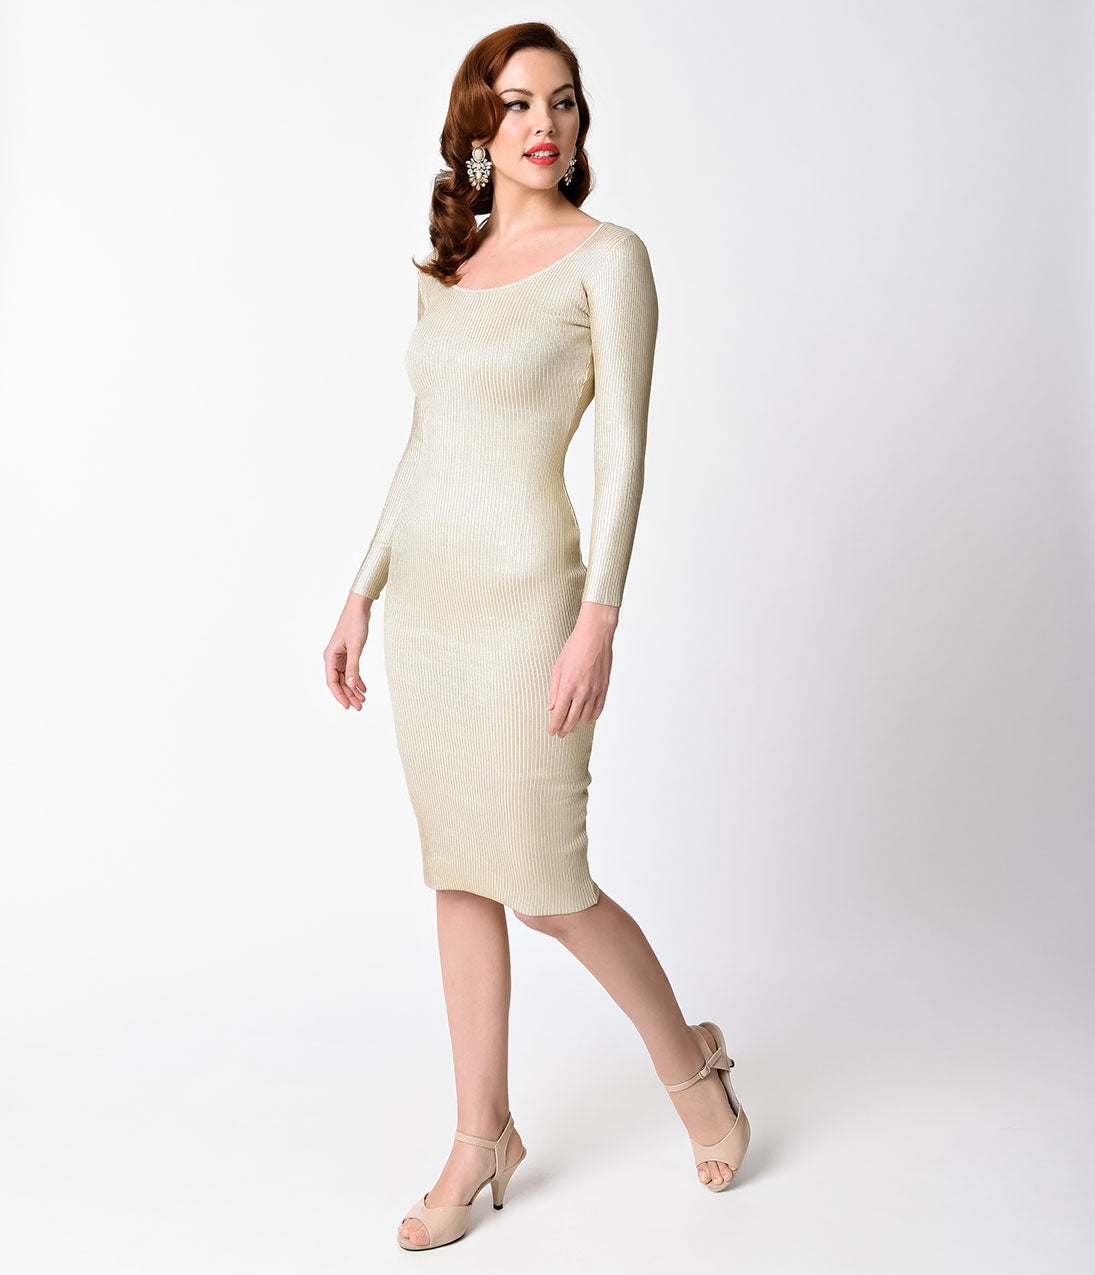 60s Wedding Dress | 1960s Style Wedding Dresses Ivory  Gold Ribbed Long Sleeve Knit Wiggle Dress $56.00 AT vintagedancer.com